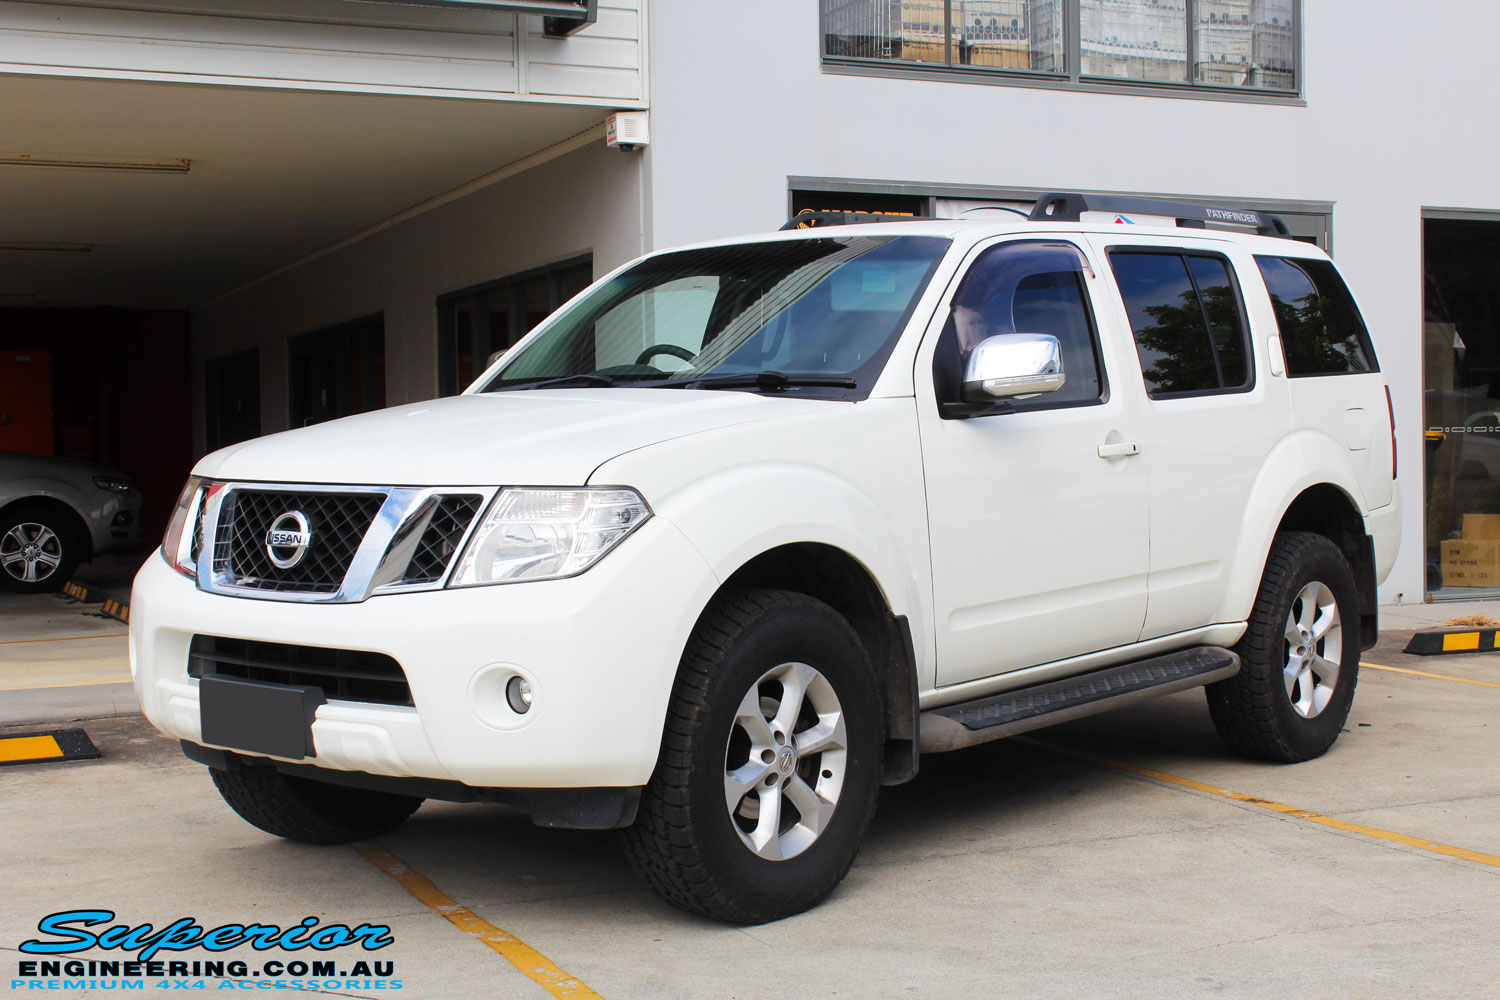 Left front side view of a White Nissan R51 Pathfinder Wagon after fitment of a Tough Dog 40mm Lift Kit